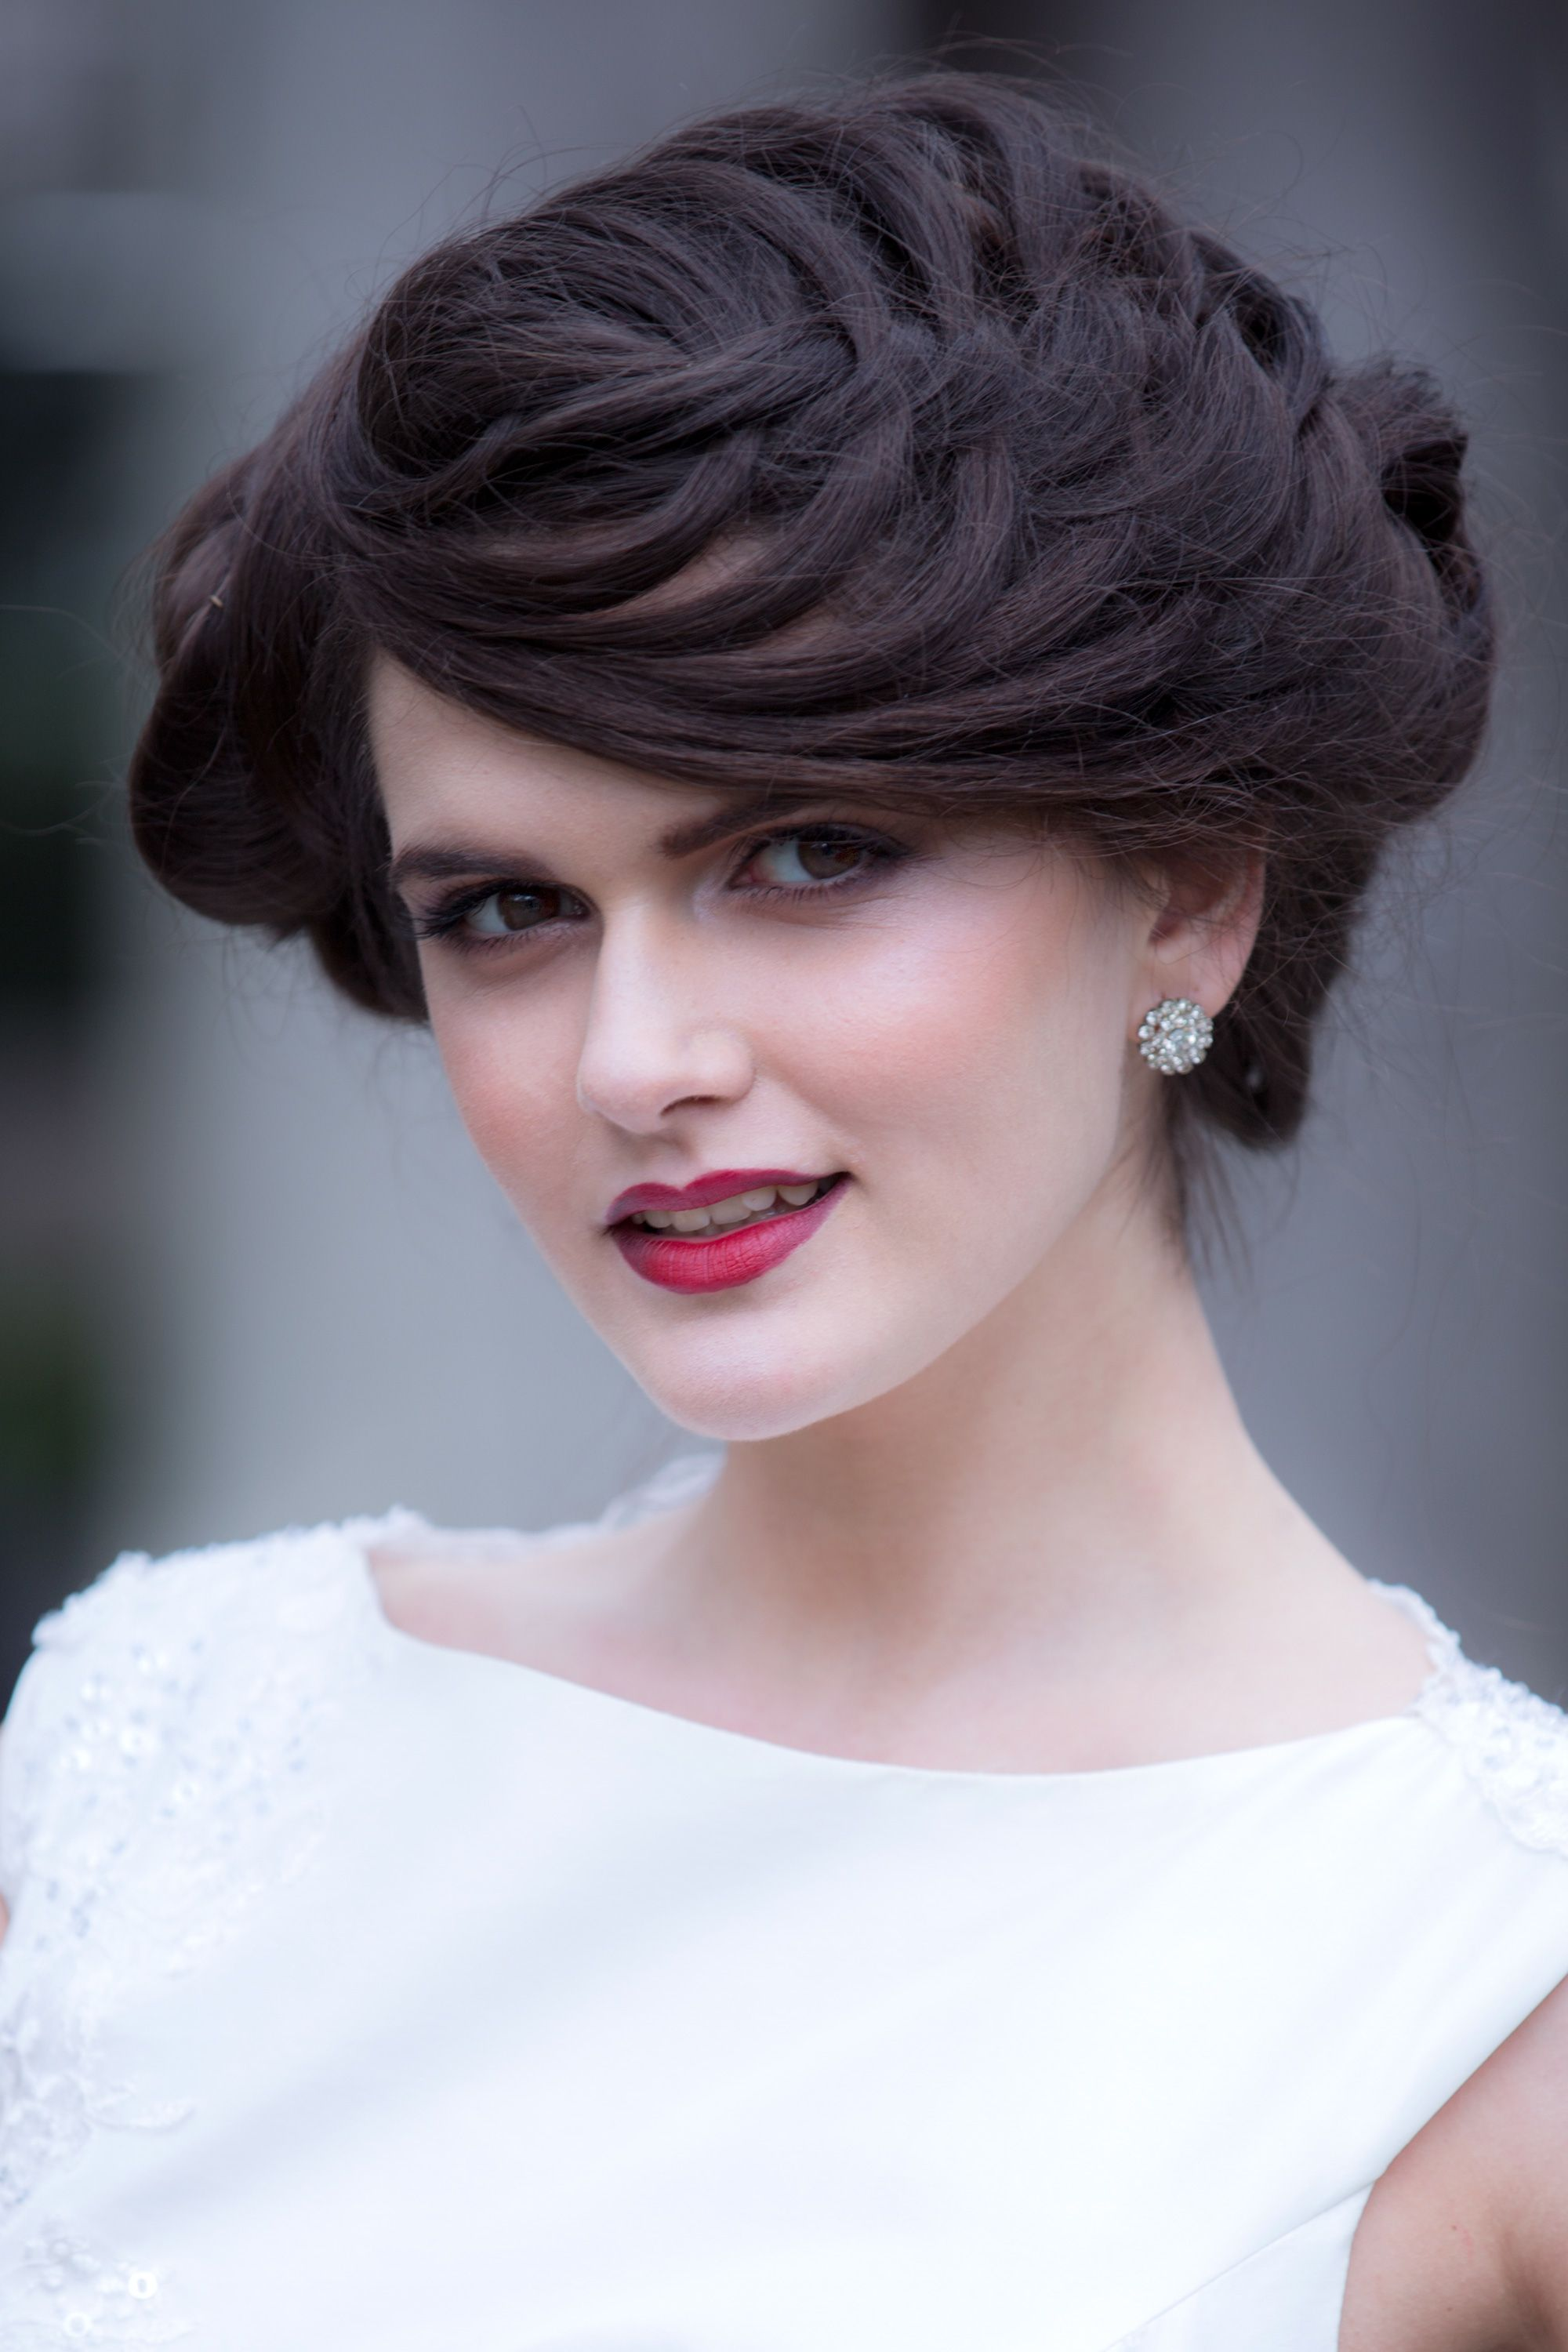 Stunning vintage wedding hairstyle